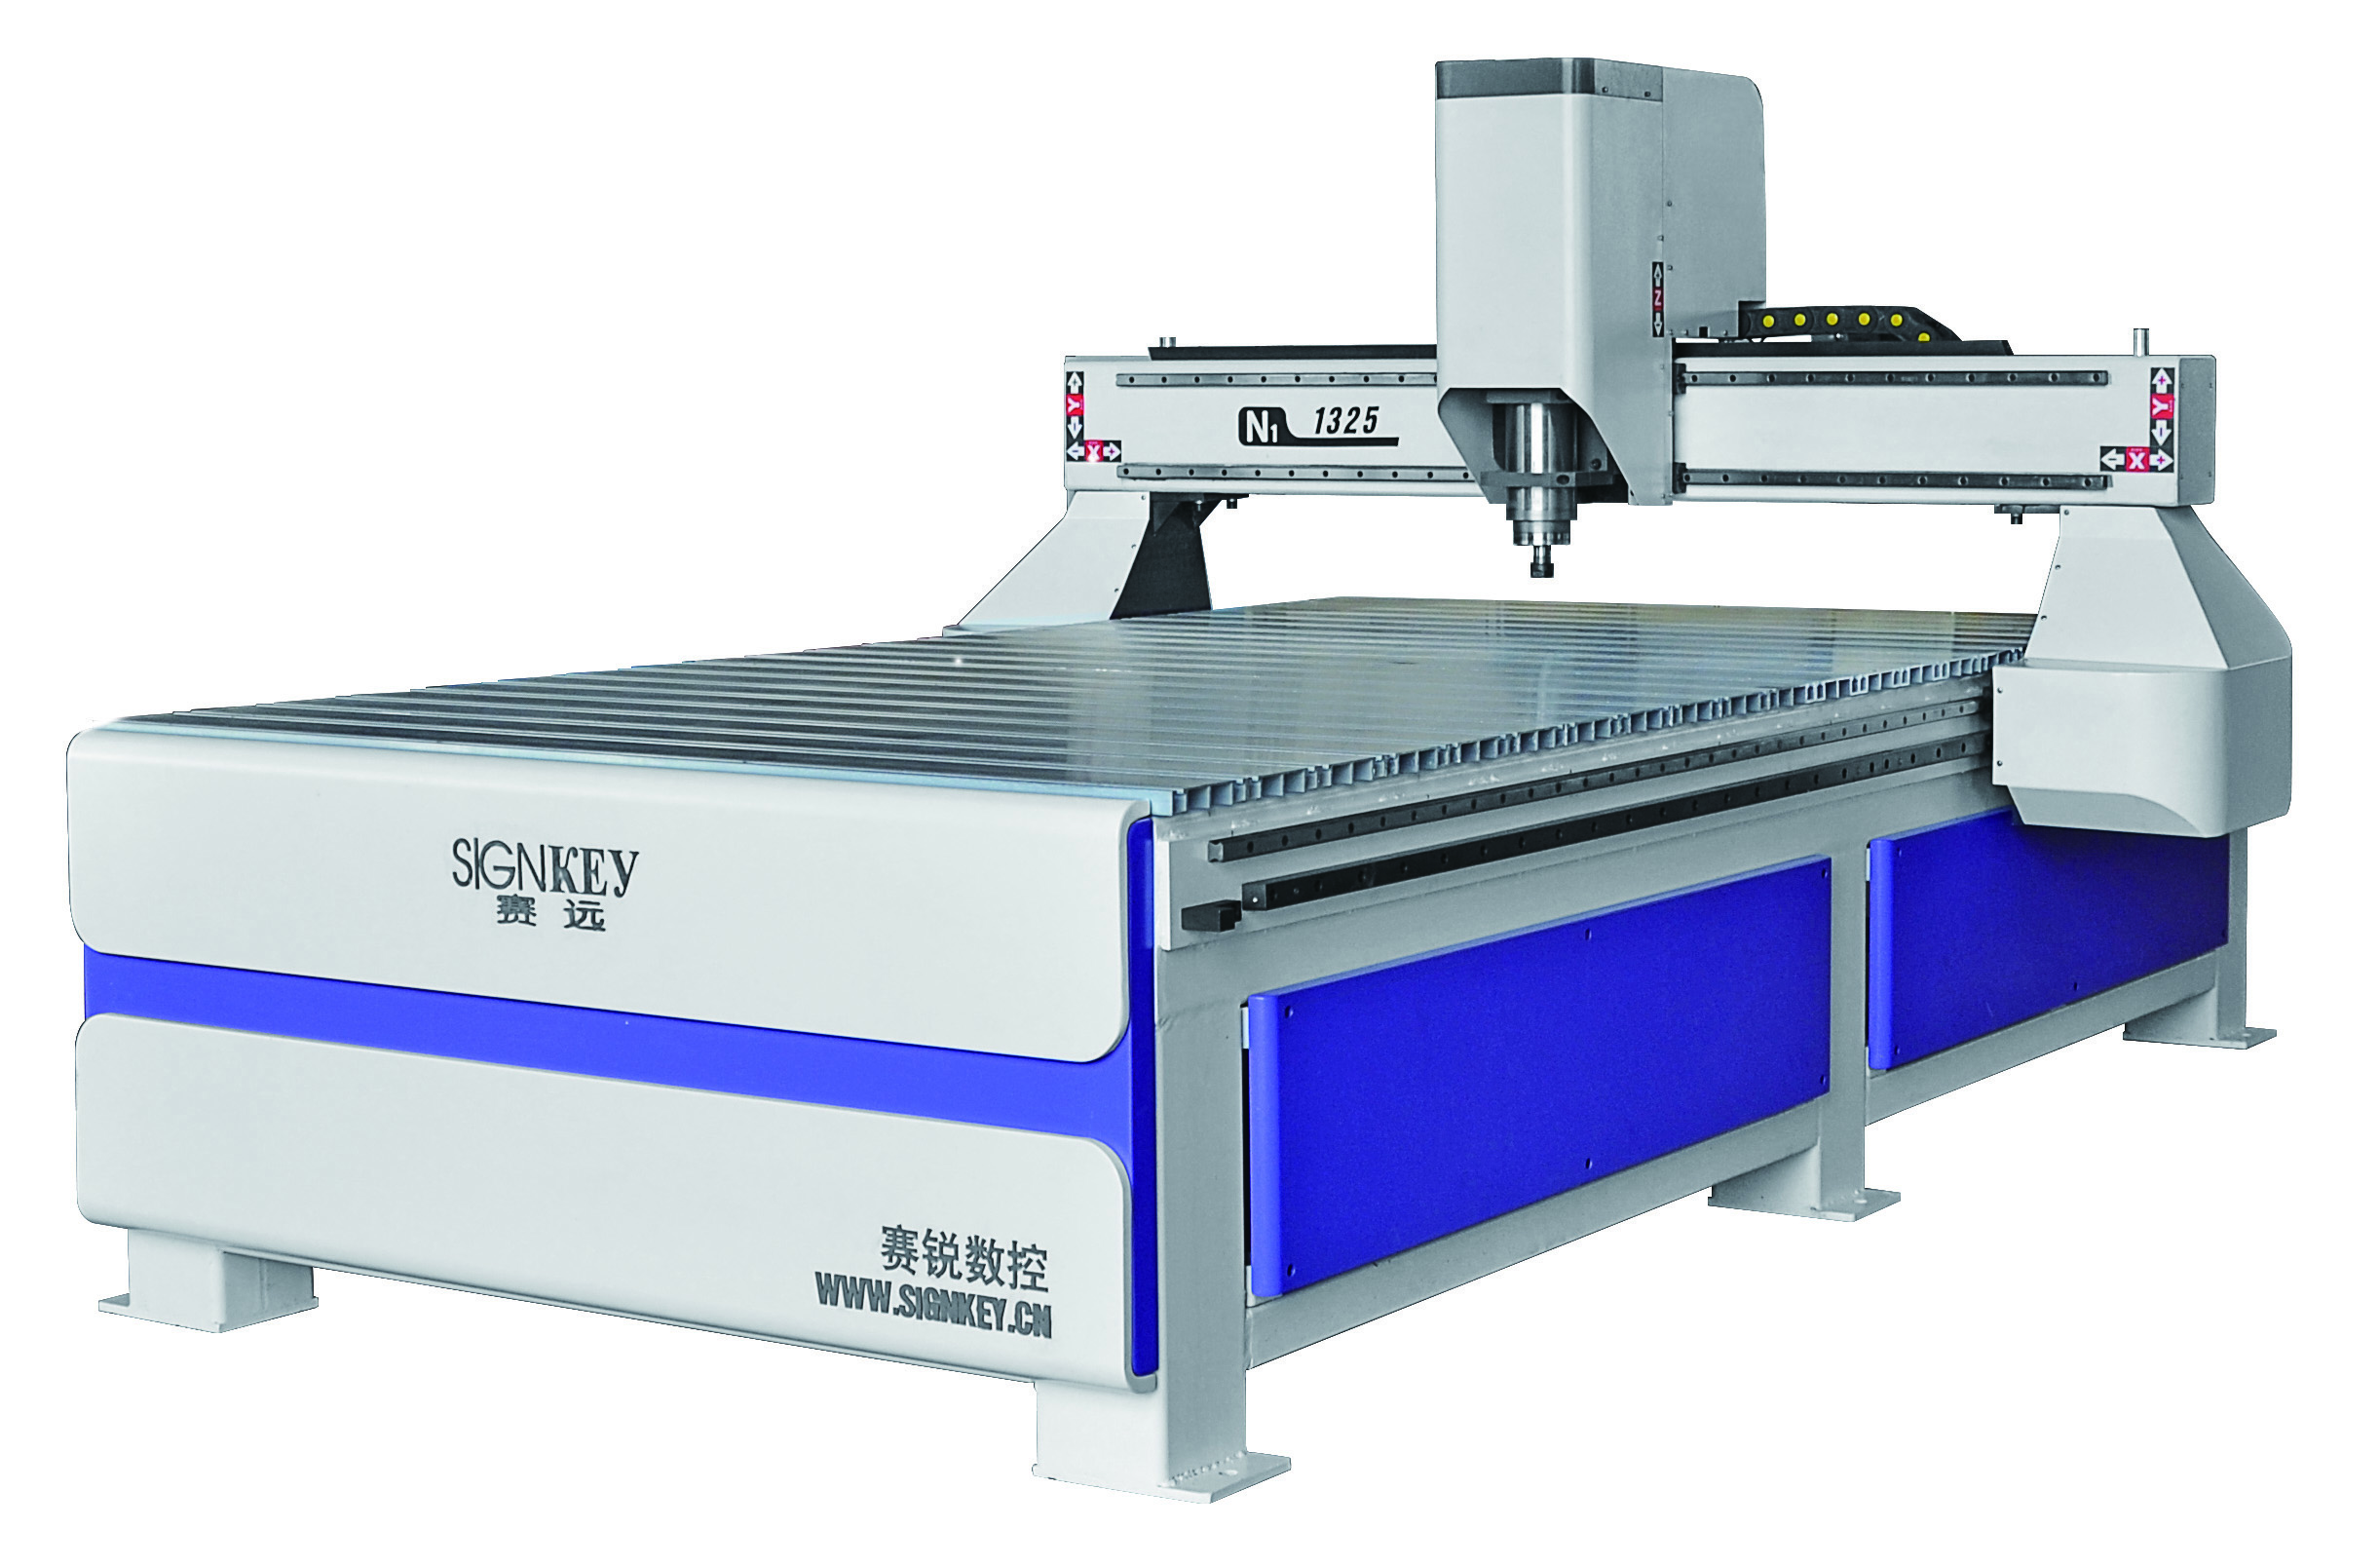 China Manufacturer Signkey brand CNC Advertising Router